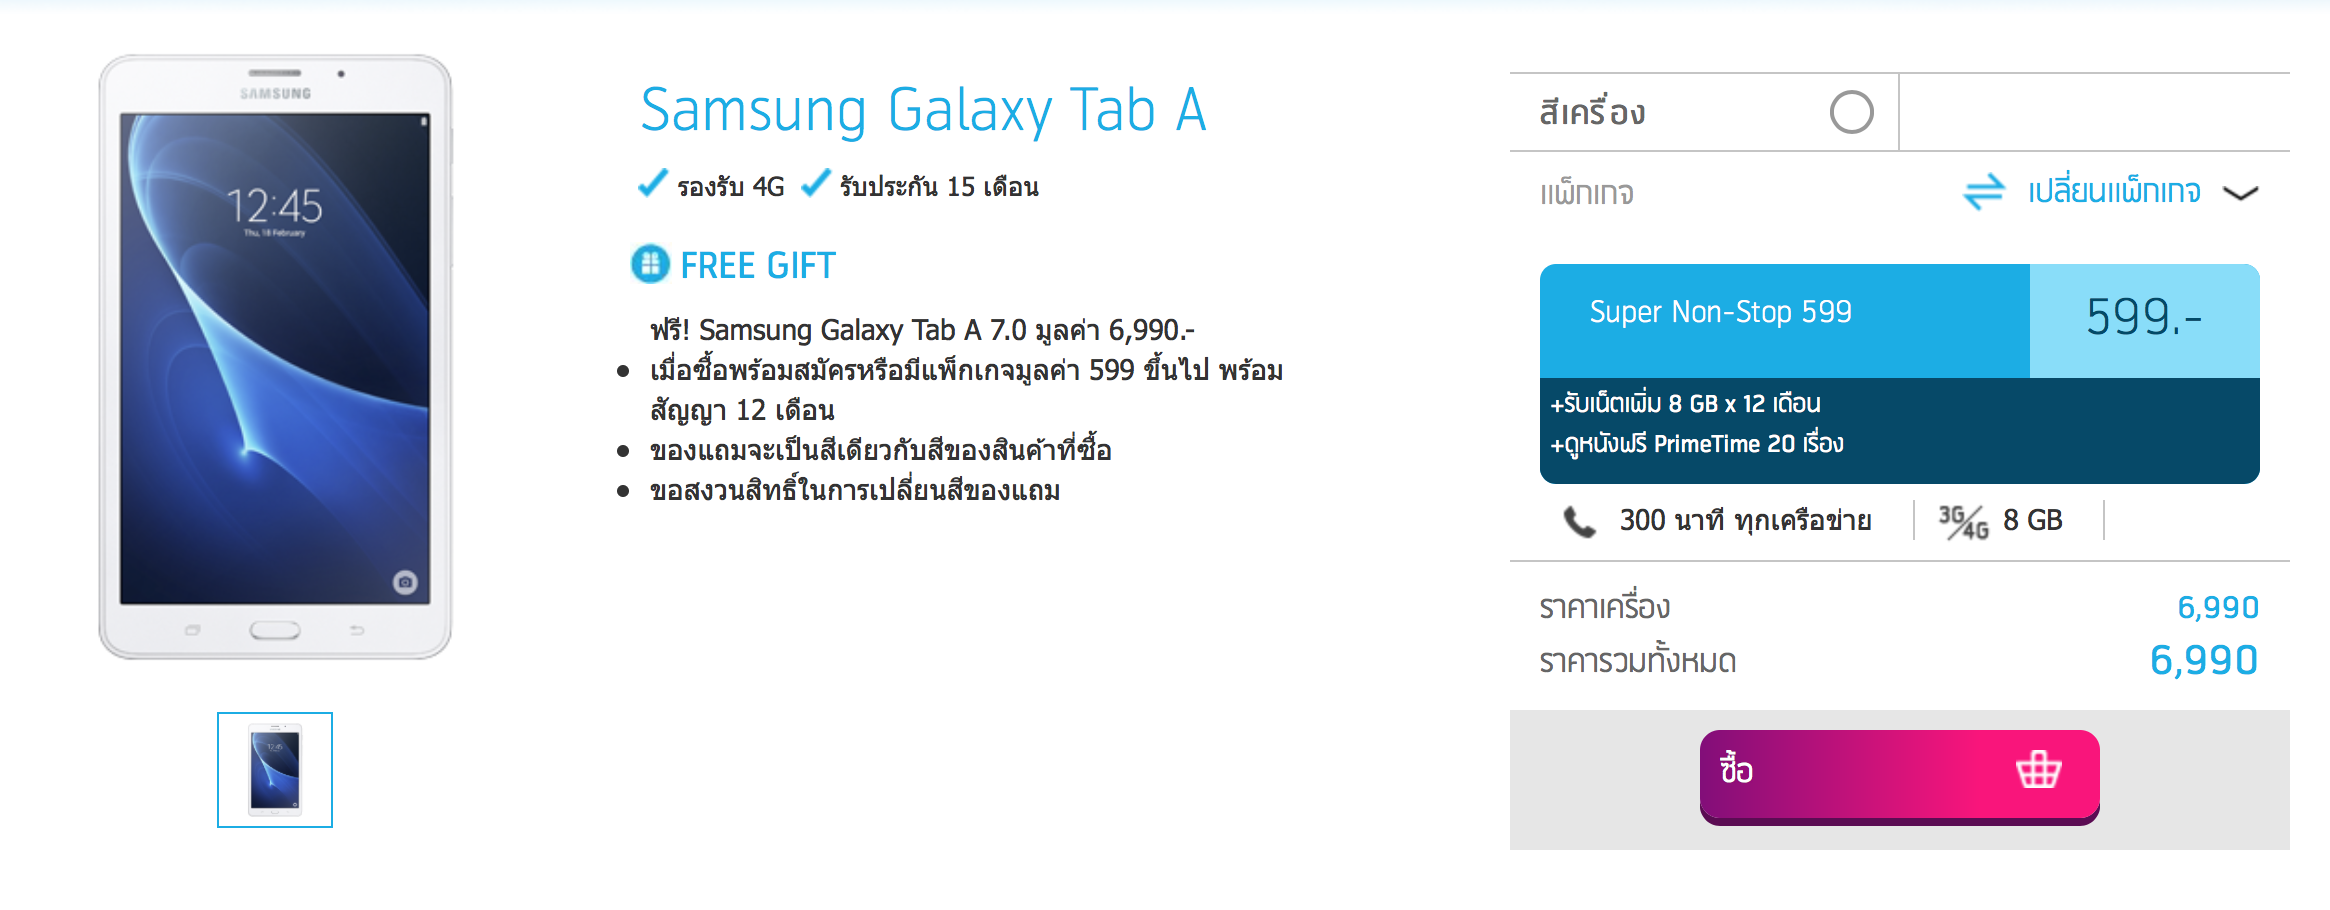 dtac-snap-deal-samsung-galaxy-tab-a-7-002